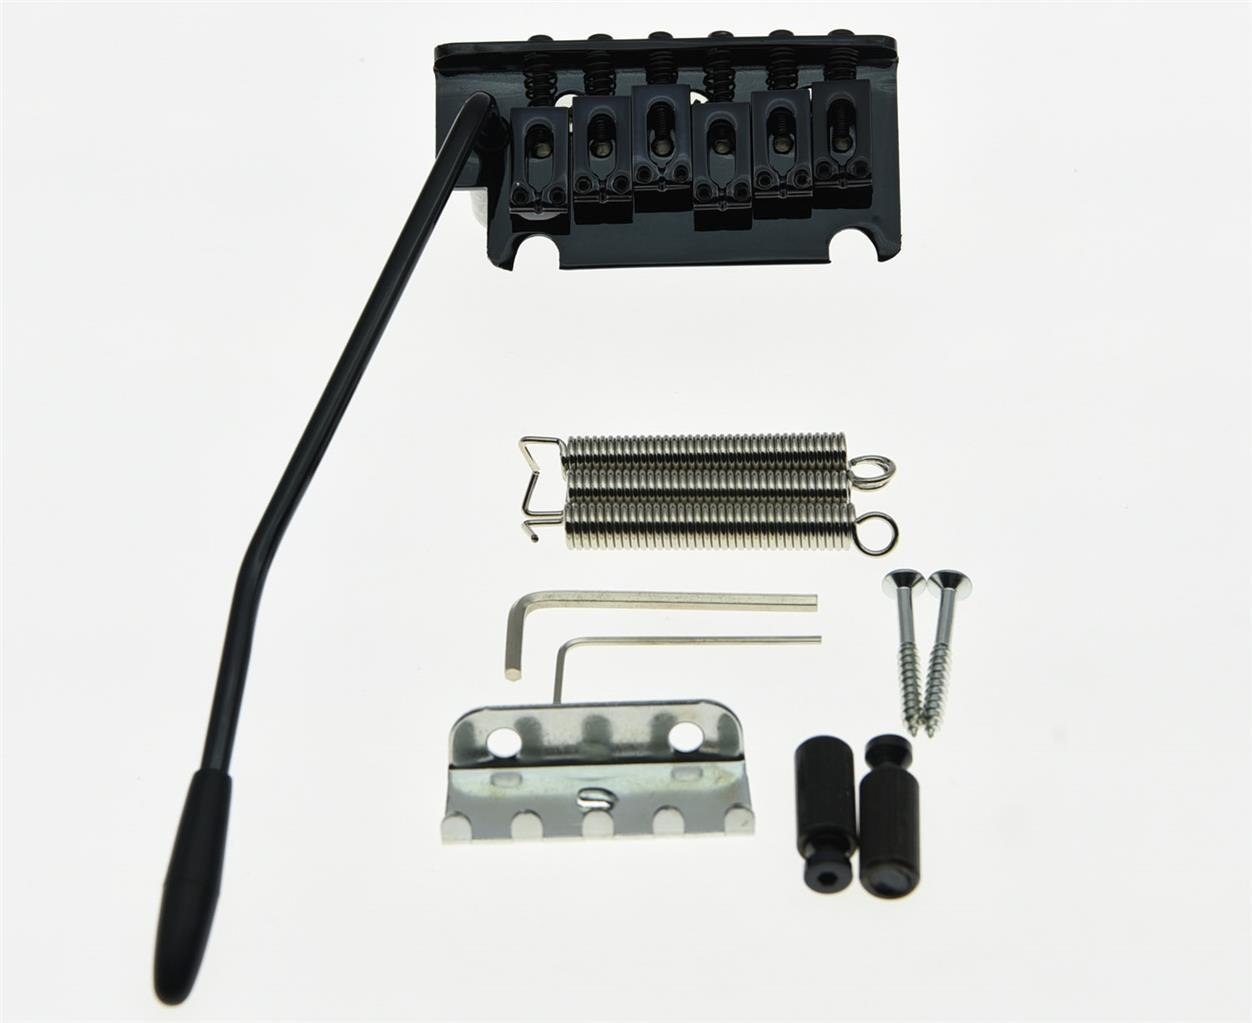 Black 2 Point ST Strat Style Guitar Tremolo Bridge Locking System After market Guitar Bridge black bridge